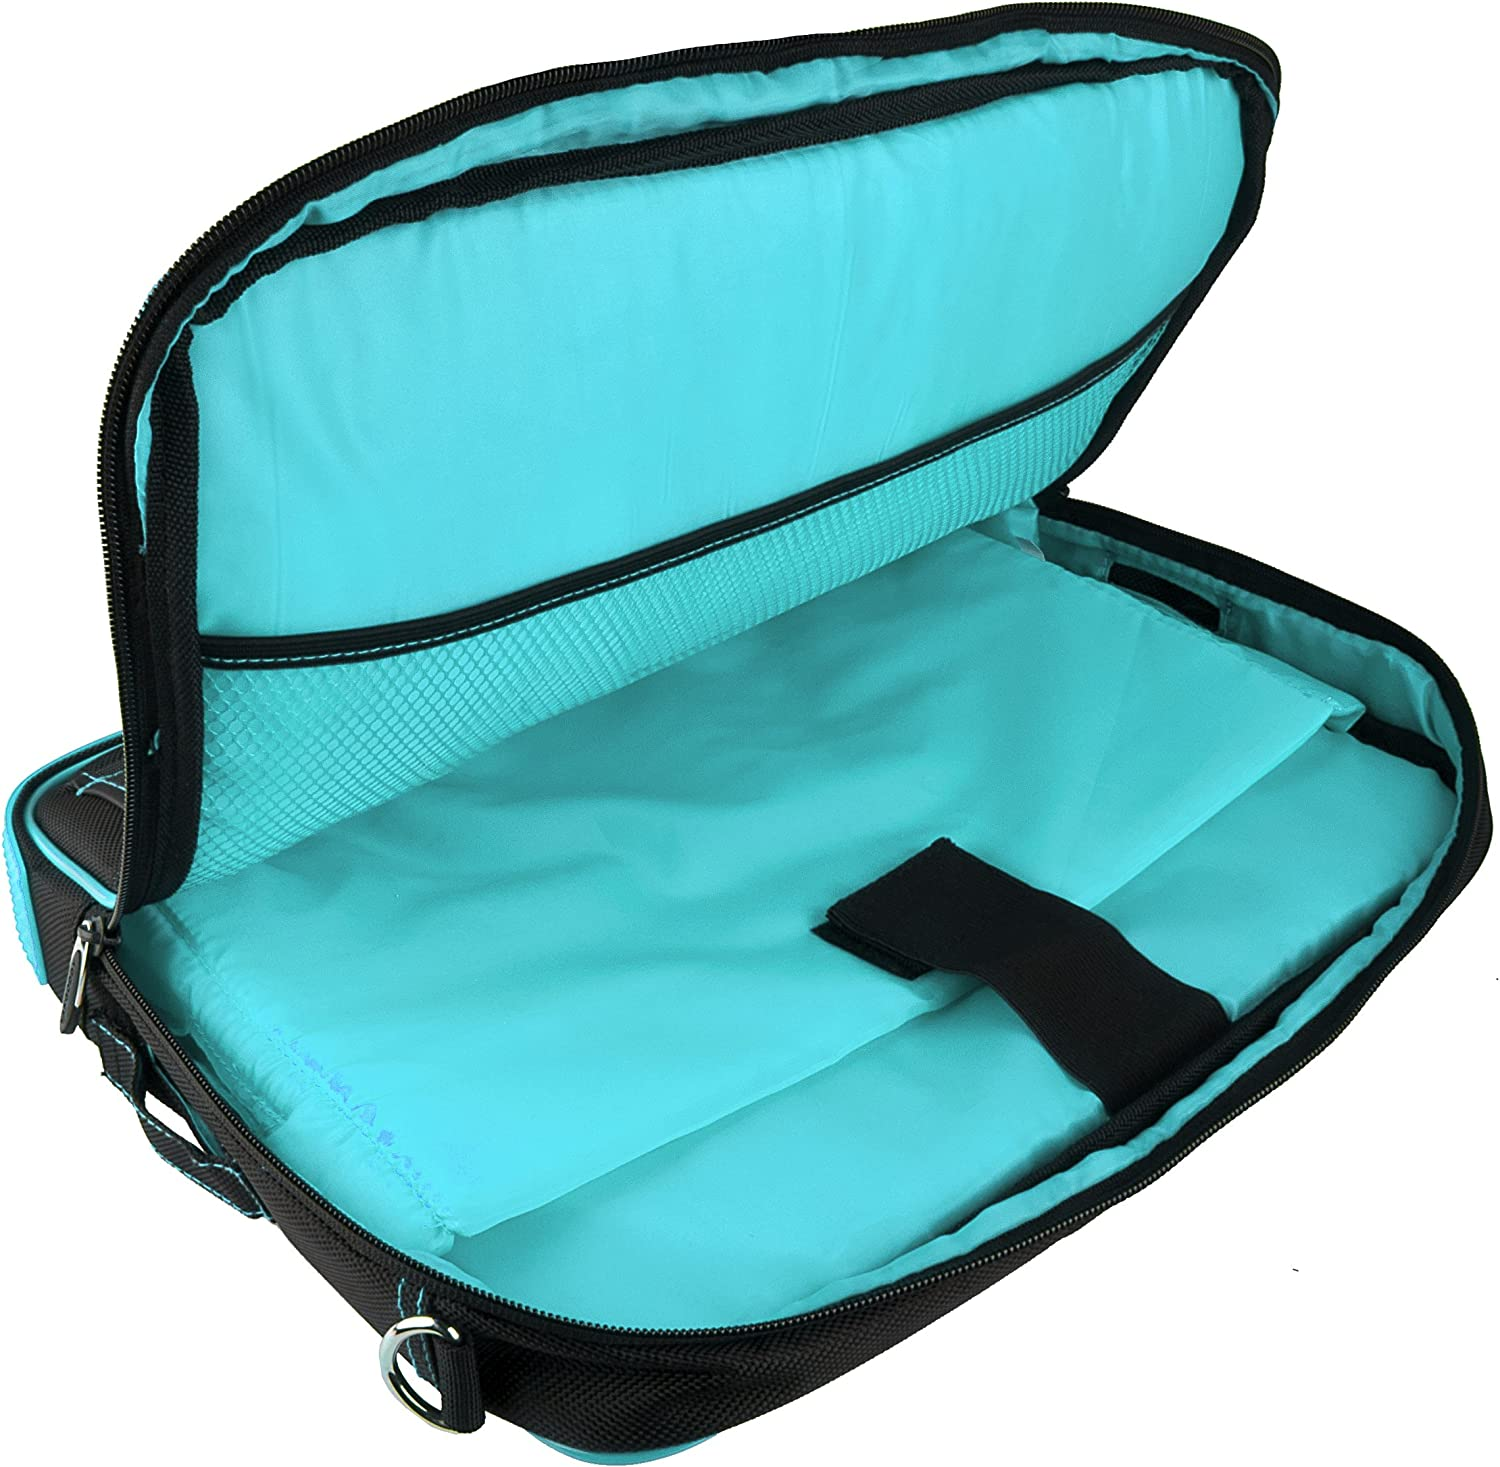 for Microsoft Surface RT 2 Pro 2 10 inch Tablets and Blue Handsfree Headphones Aqua Blue VG Pindar Edition Messenger Bag Carrying Case